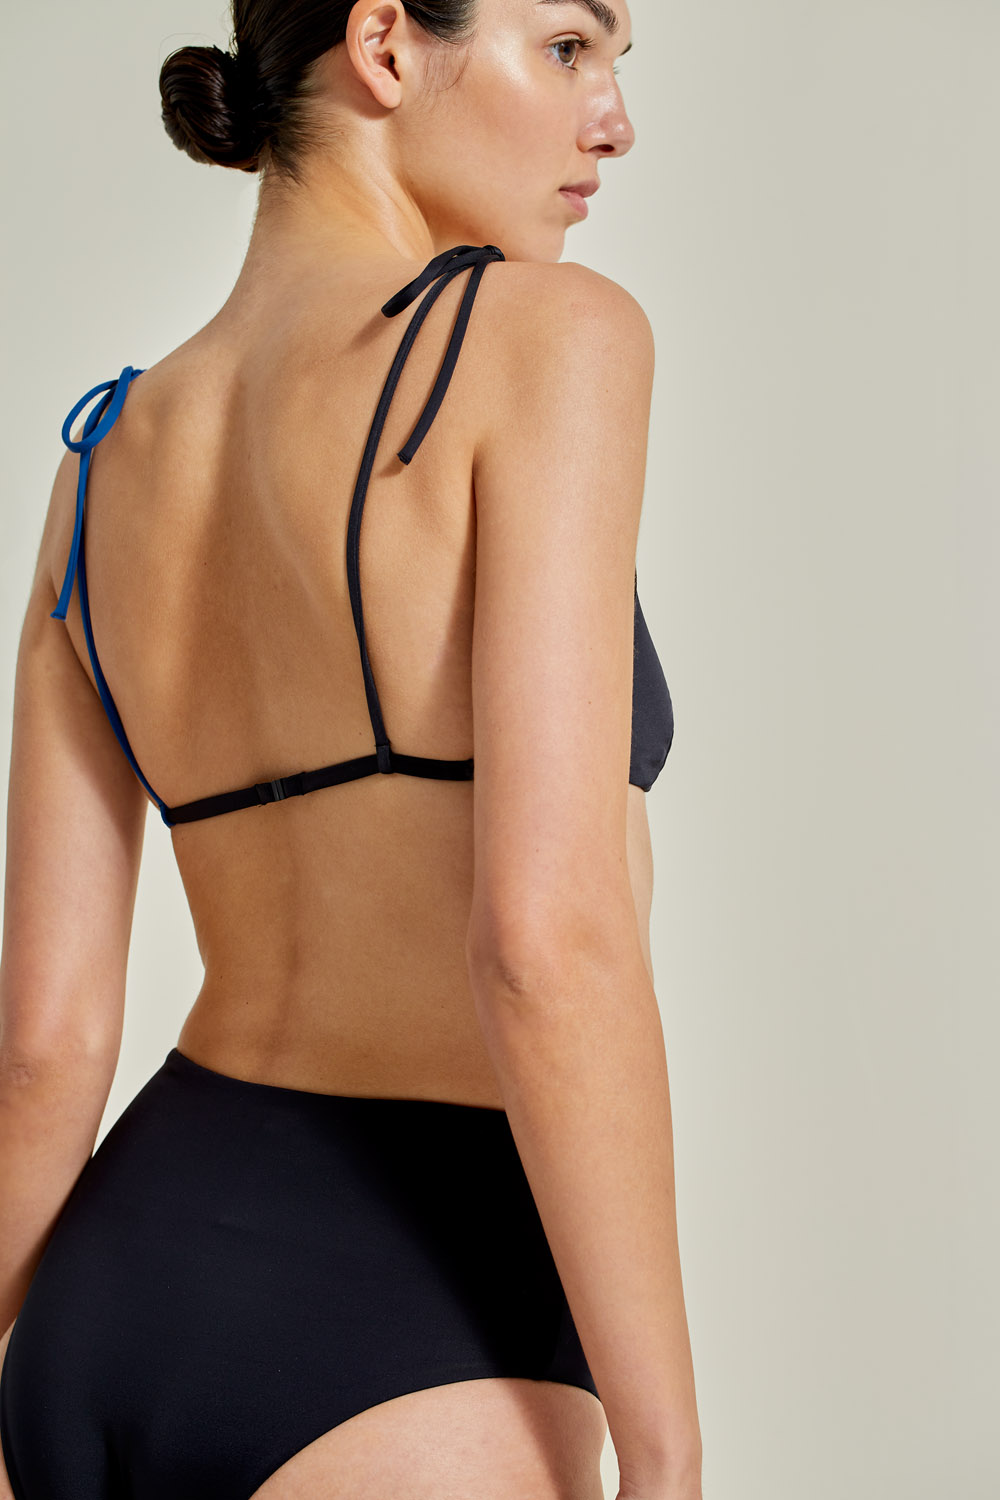 Sustainable Bikini, recycled fabric, handmade in Spain. Ons + Farond in black / atlantic, by NOW_THEN